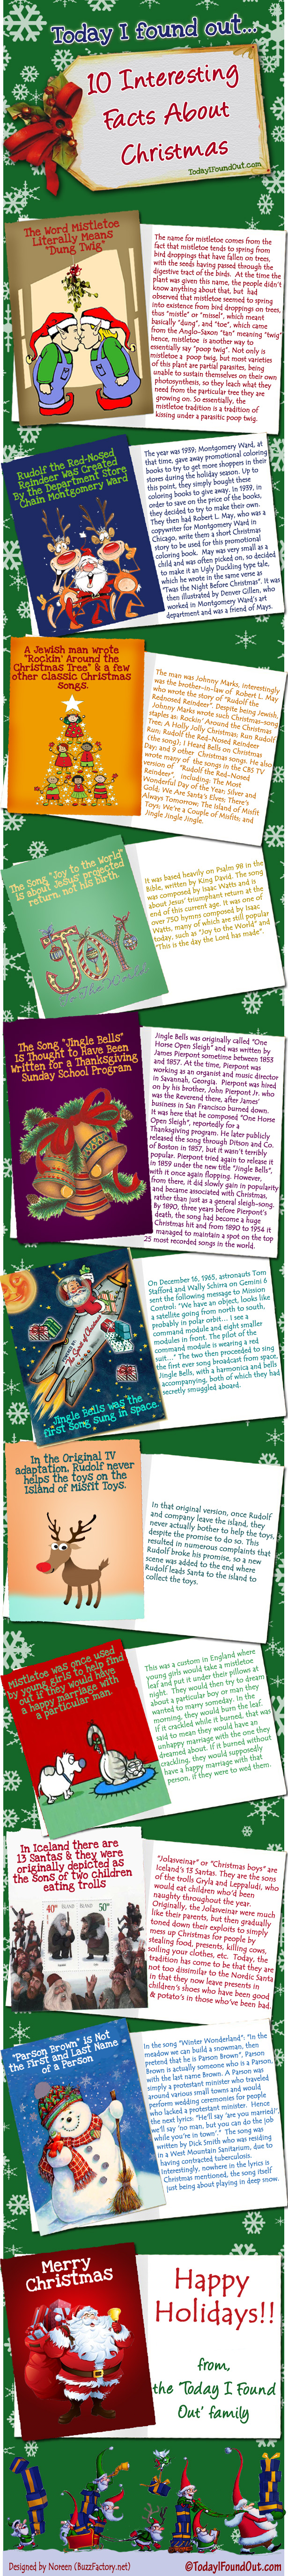 10 Interesting Christmas Facts